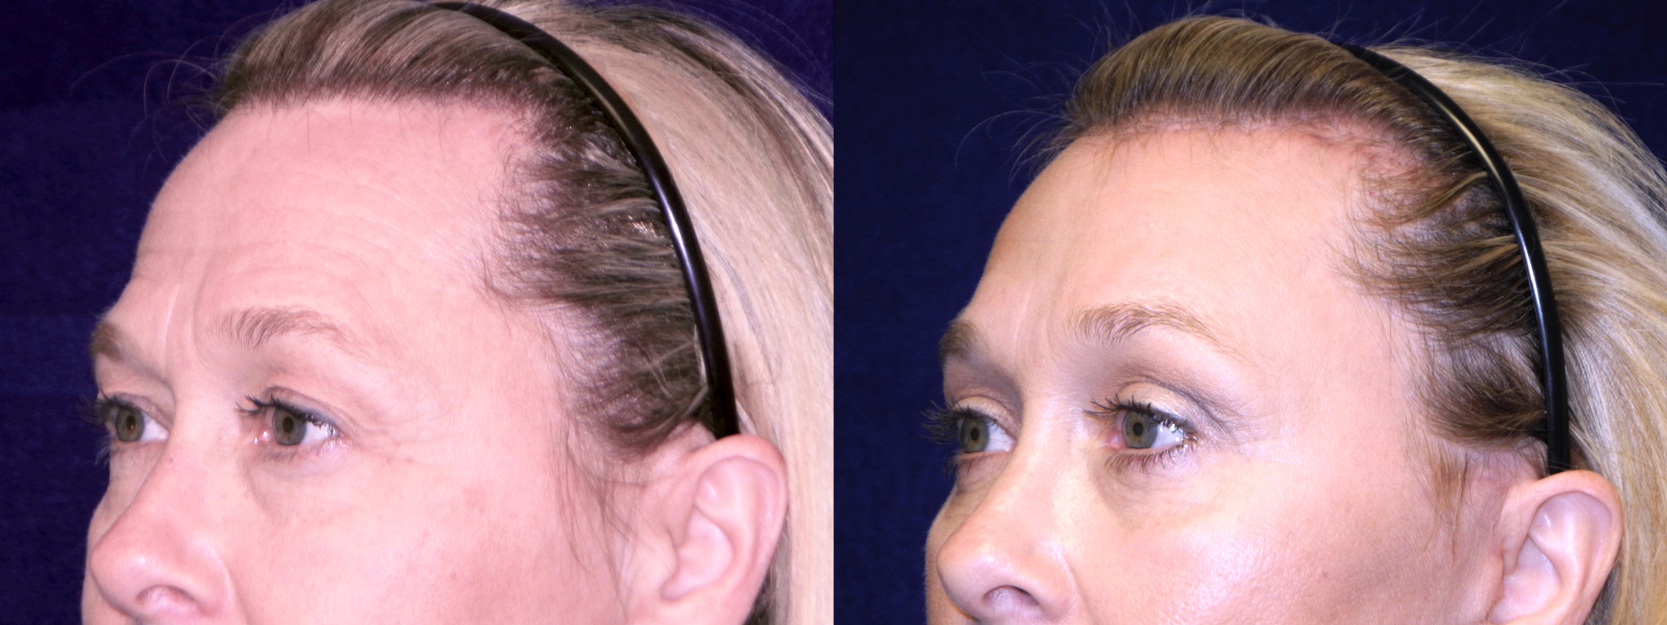 Left 3/4 View Close Up - Facelft, Browlift and Upper Eyelid Surgery